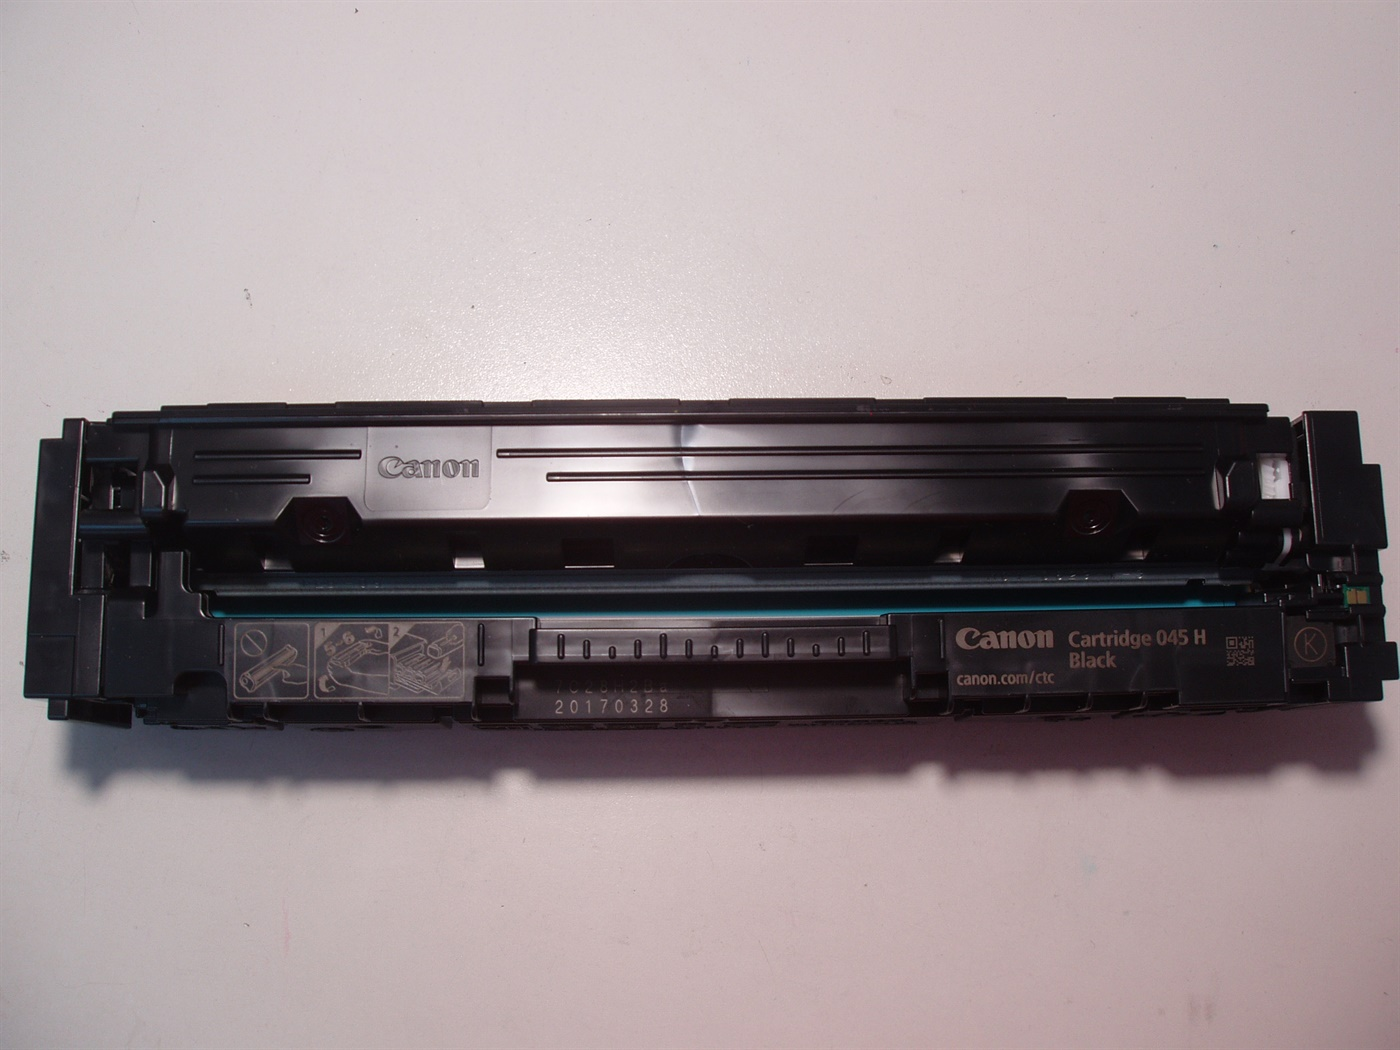 CANON CARTRIDGE 045H - BLACK